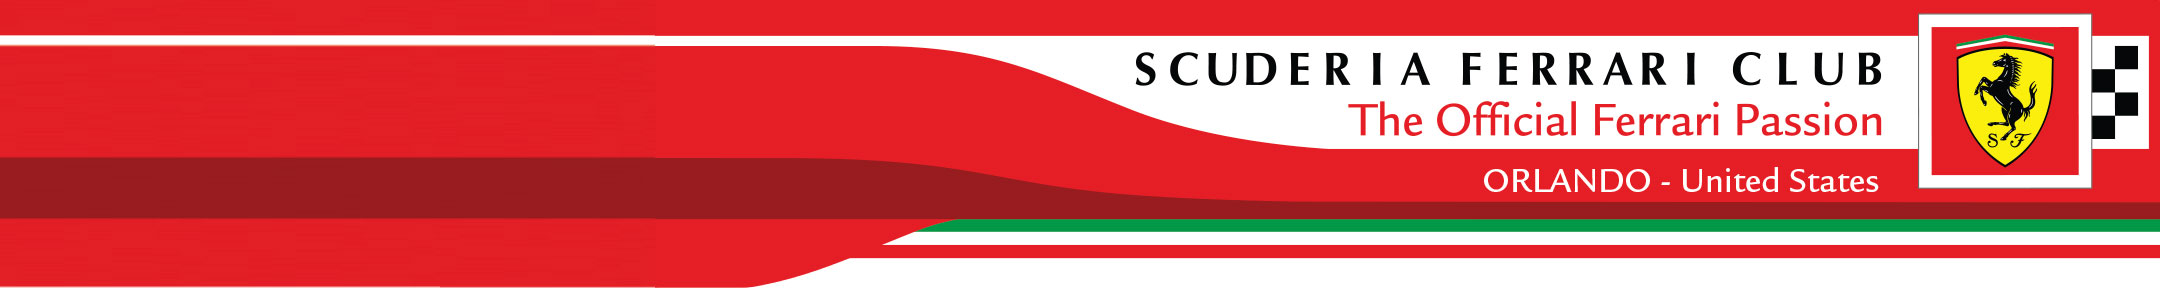 Scuderia Ferrari Club of Orlando